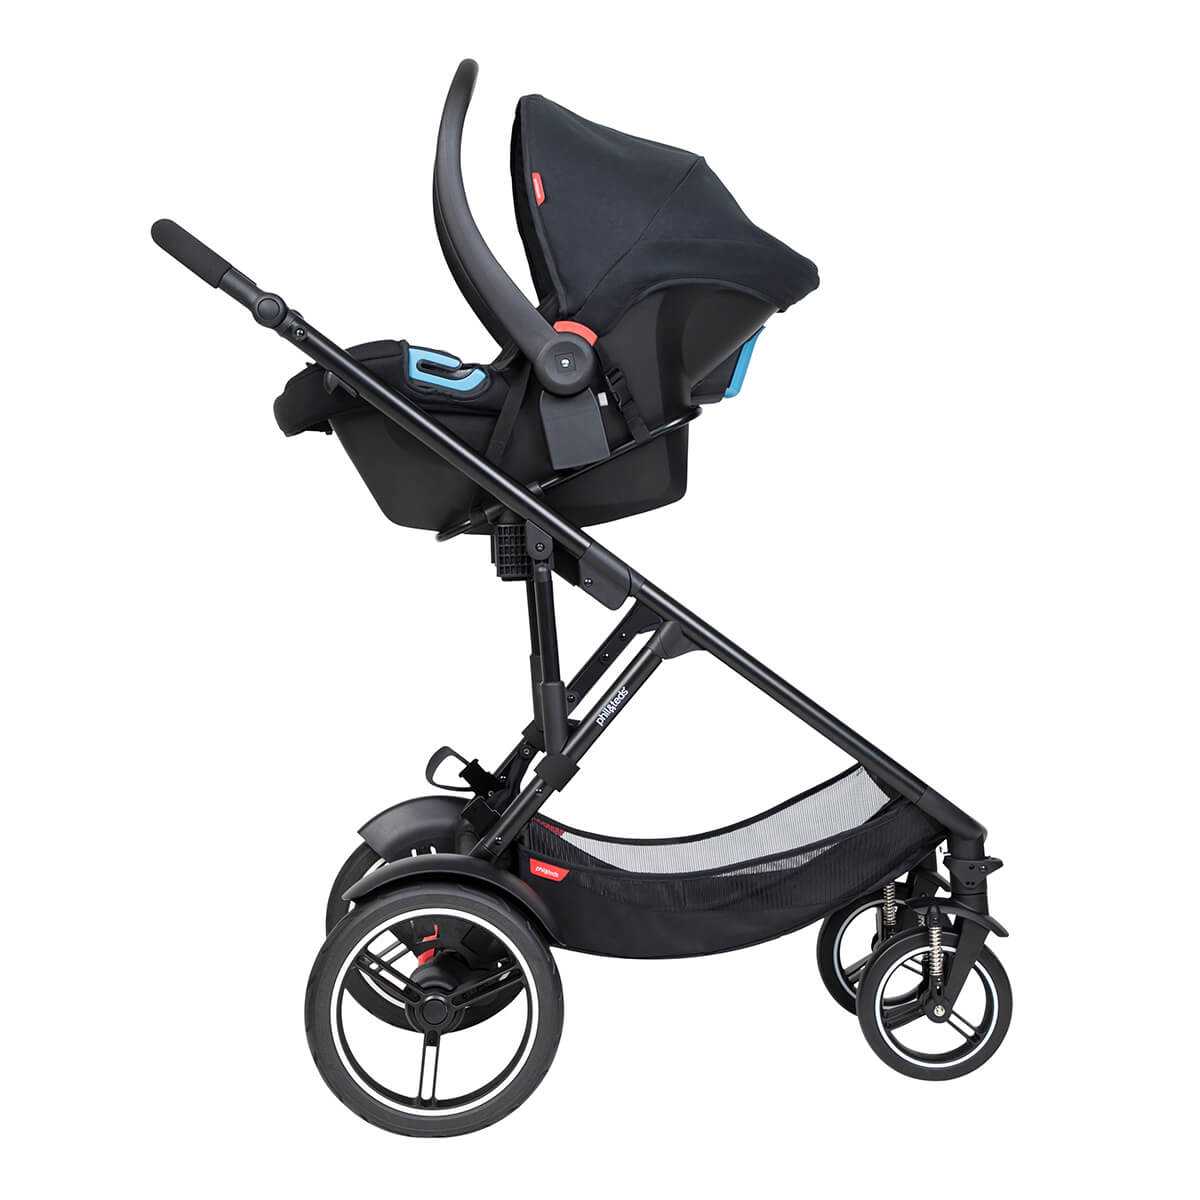 https://cdn.accentuate.io/4394883809385/19119322529897/philteds-voyager-buggy-with-travel-system-in-parent-facing-mode-v1625630640469.jpg?1200x1200